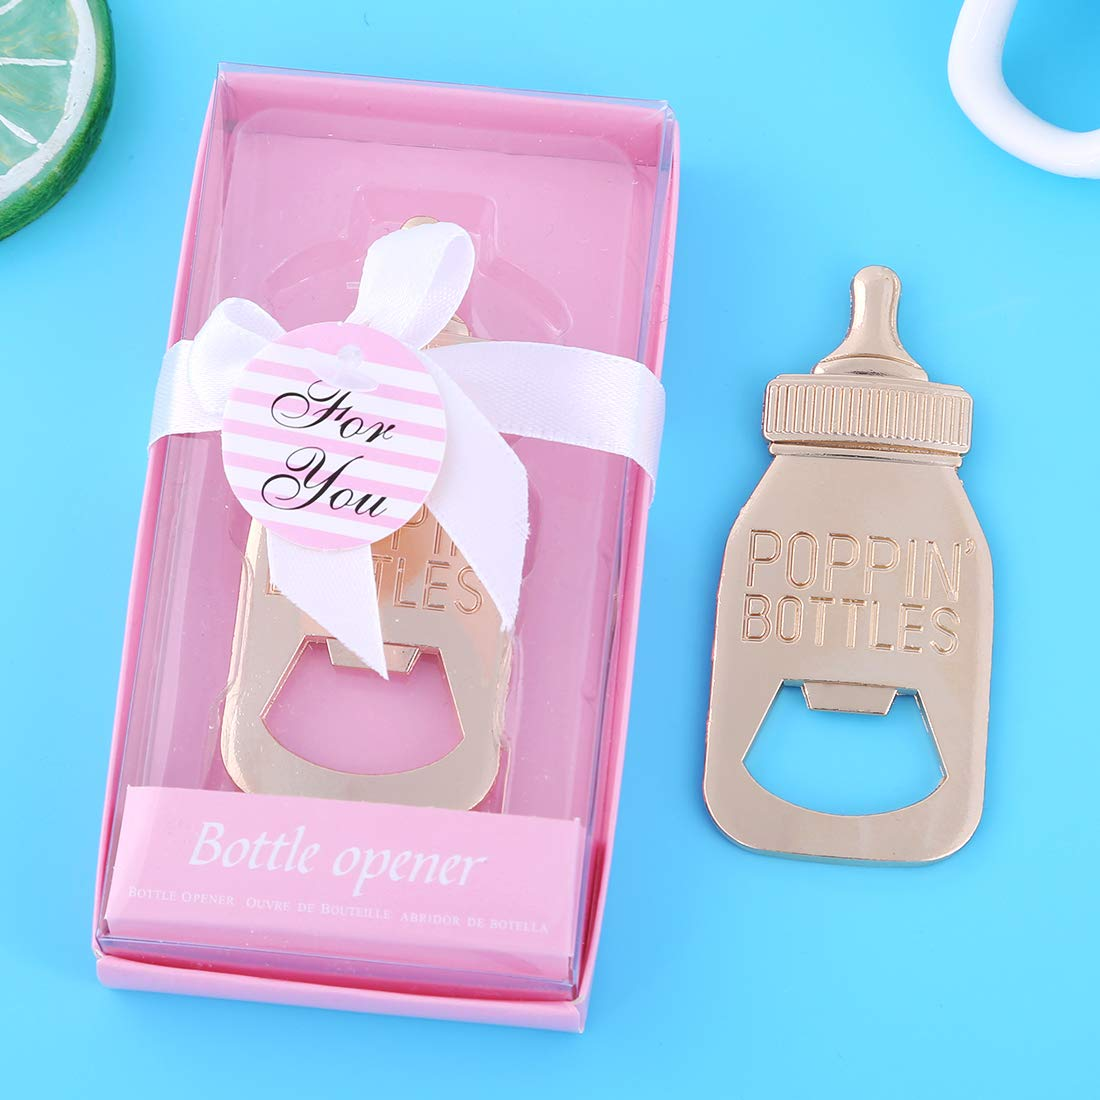 30 Pcs Baby Shower Party Favors Return Gifts For Guests Baby Bottle Bottle Openers Decorations Boy Girl By PARTYGOGO (Pink, 30) by PARTYGOGO